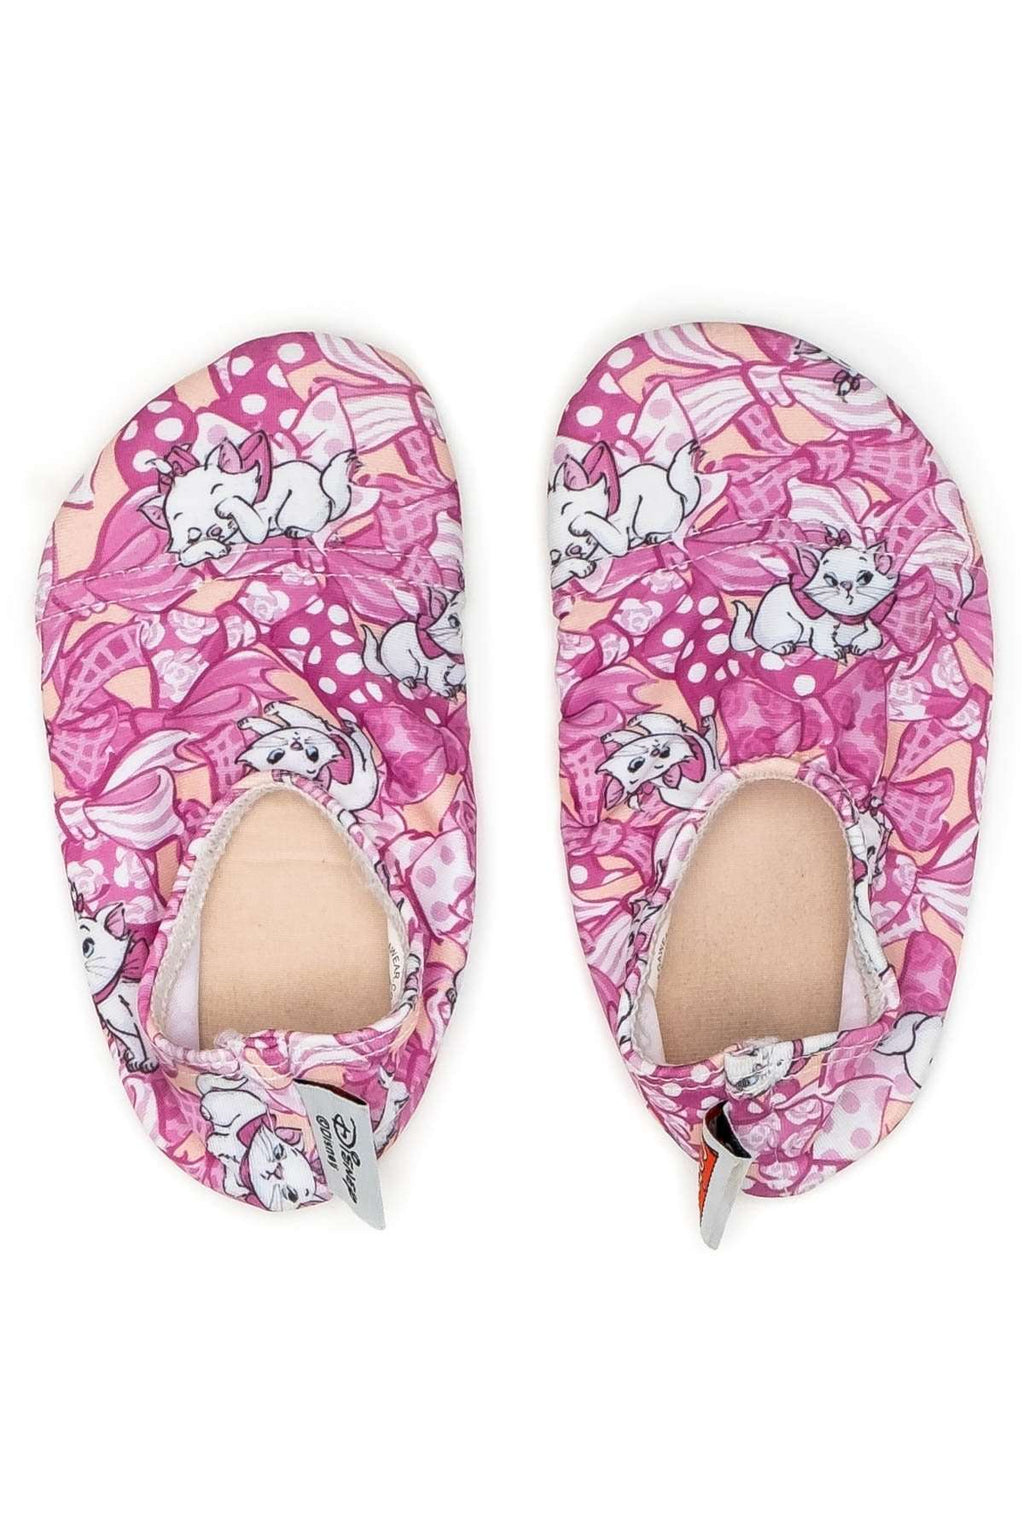 Coega Disney Children Pool & Beach Shoes Pink Marie / Xs Ultra Light Footwear